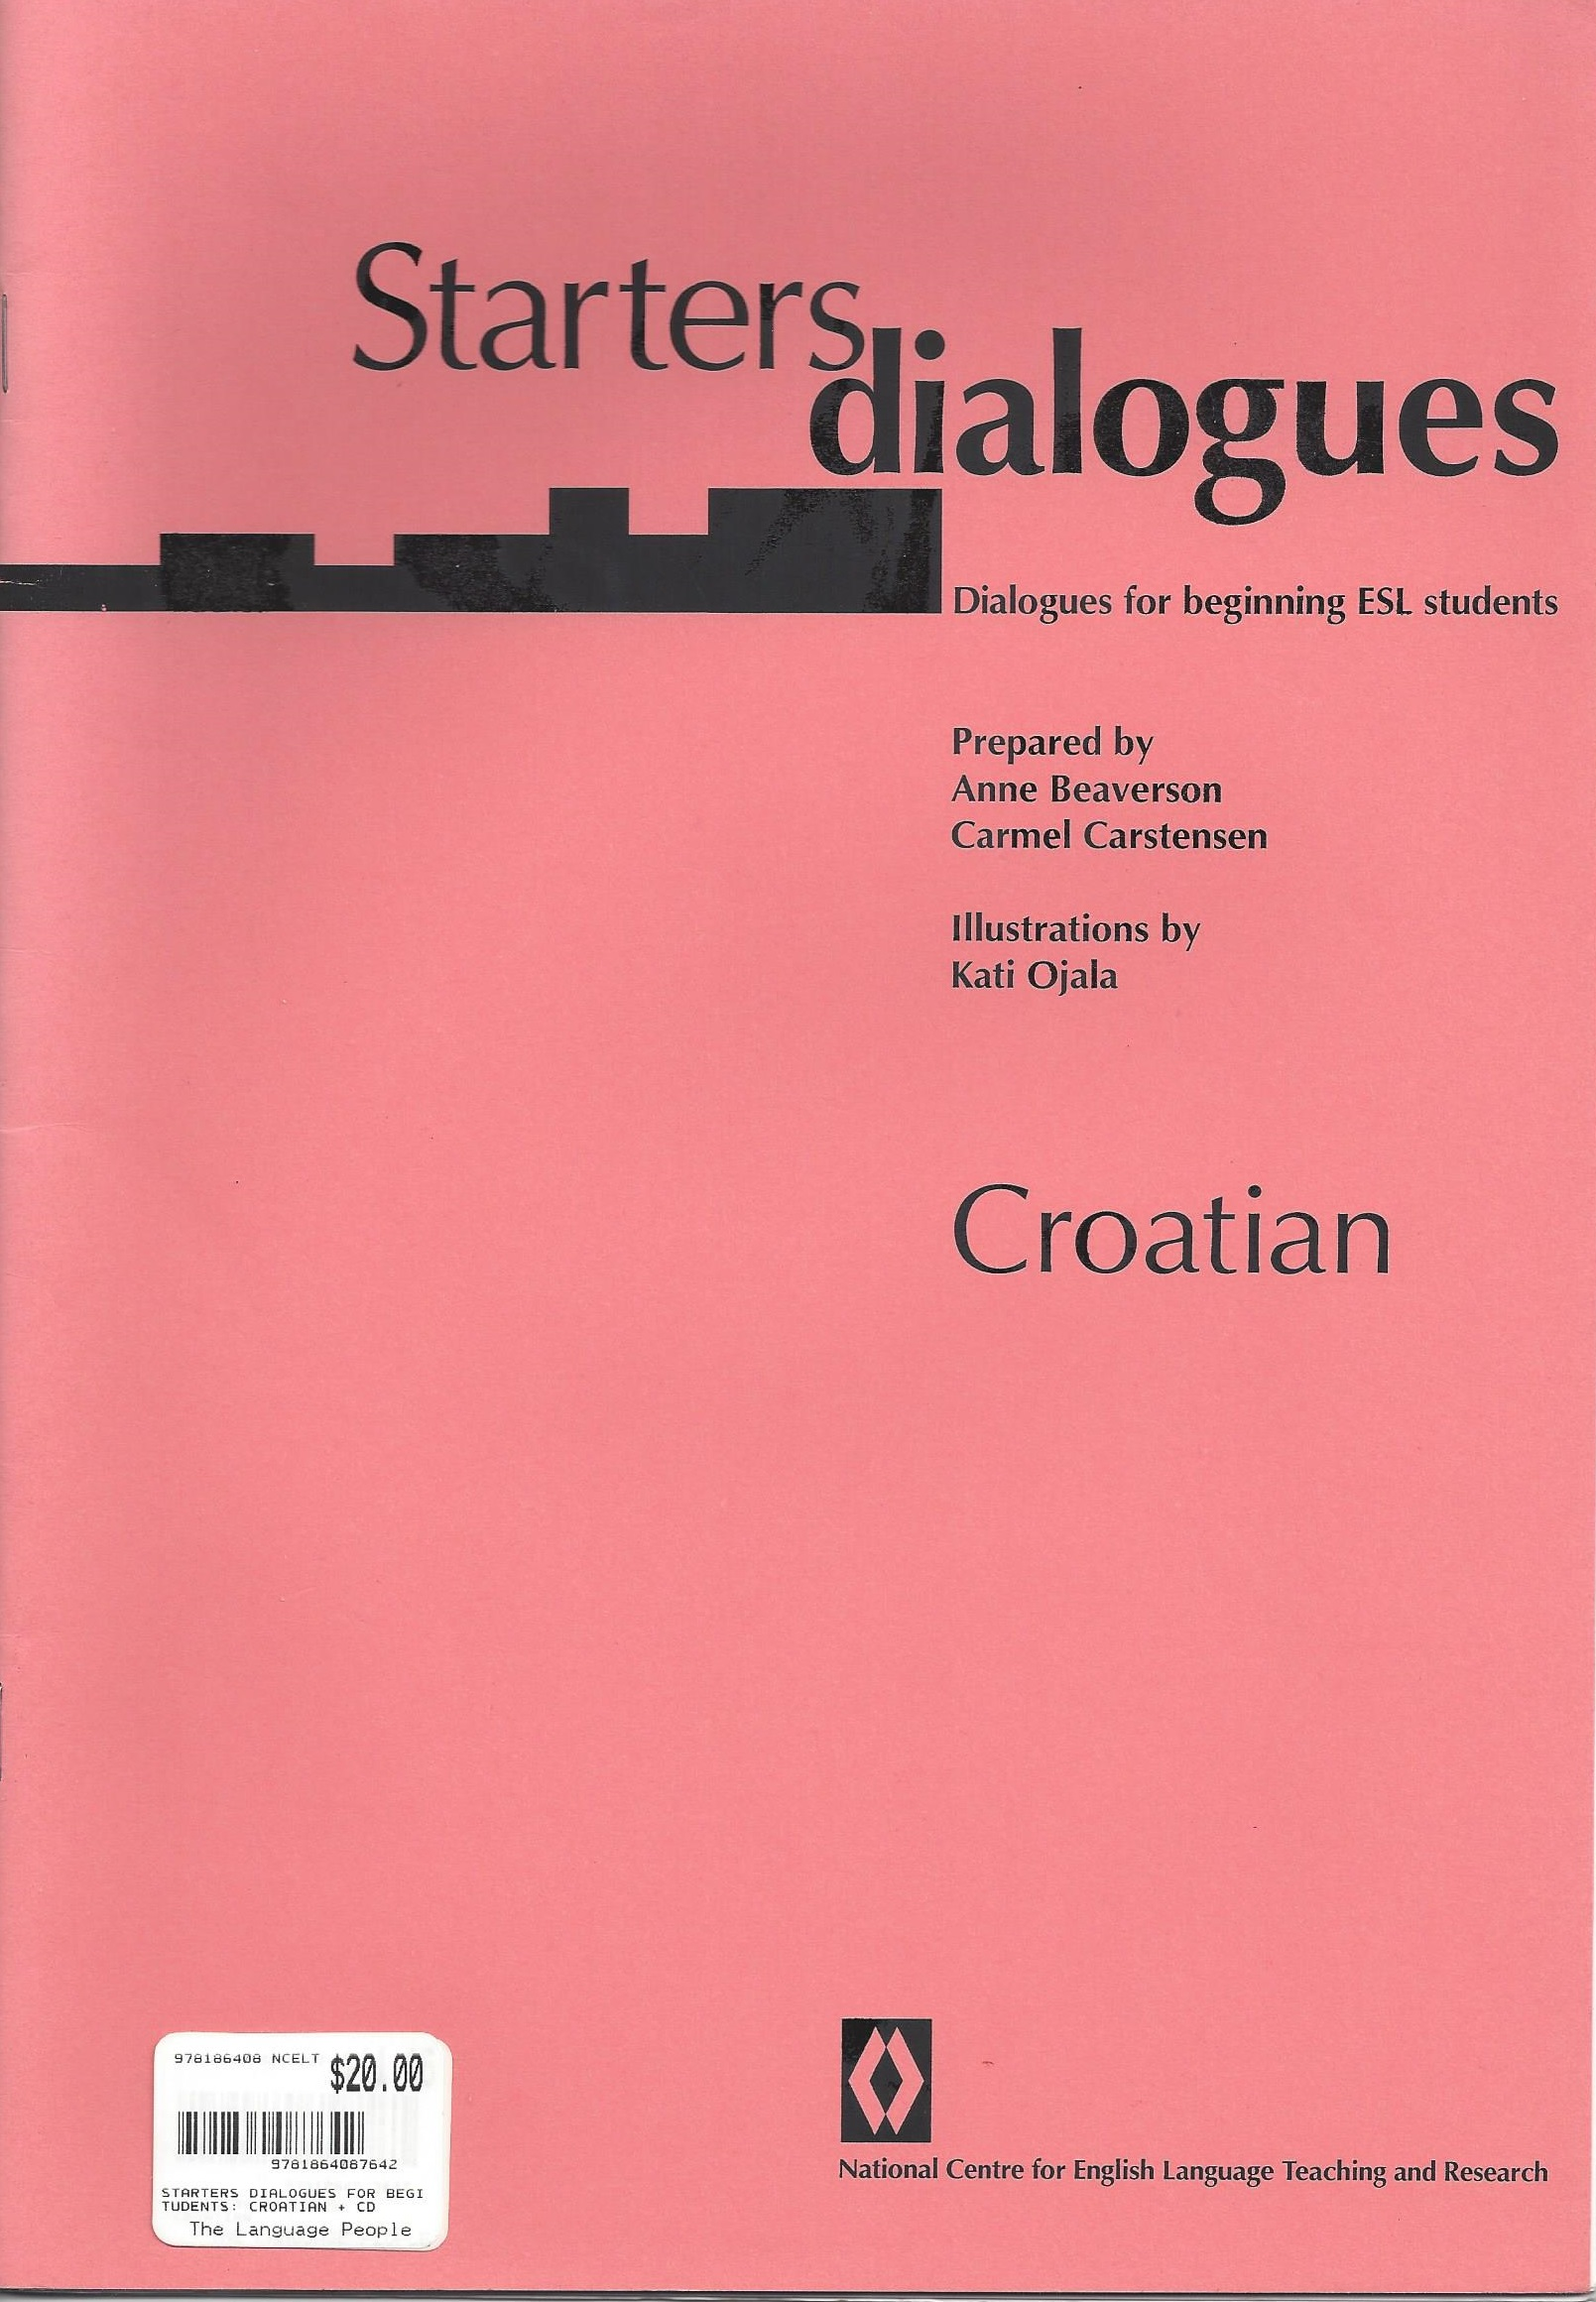 Starters Dialogues: Croation - A Resource for People Learning English